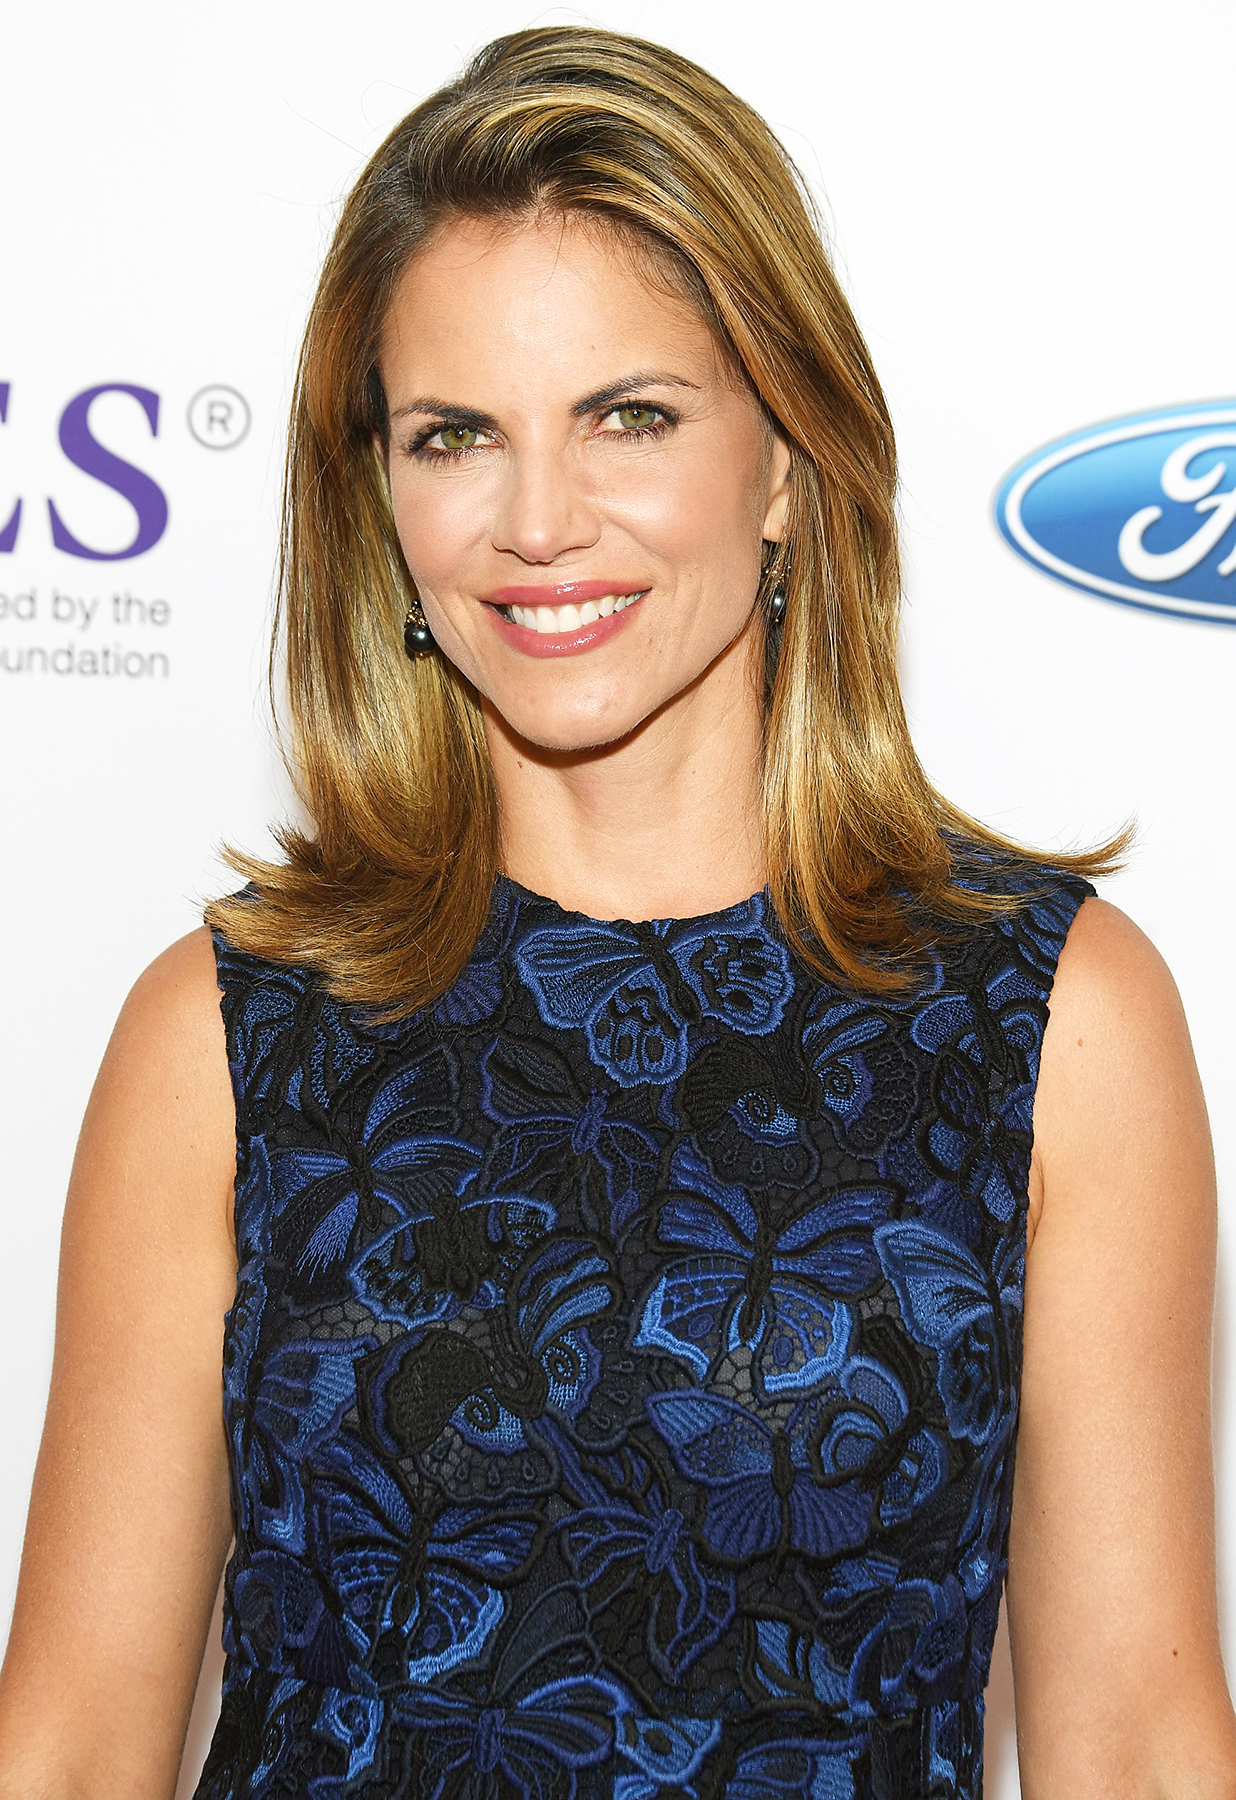 Pictures Natalie Morales nudes (48 photo), Ass, Cleavage, Boobs, cleavage 2018